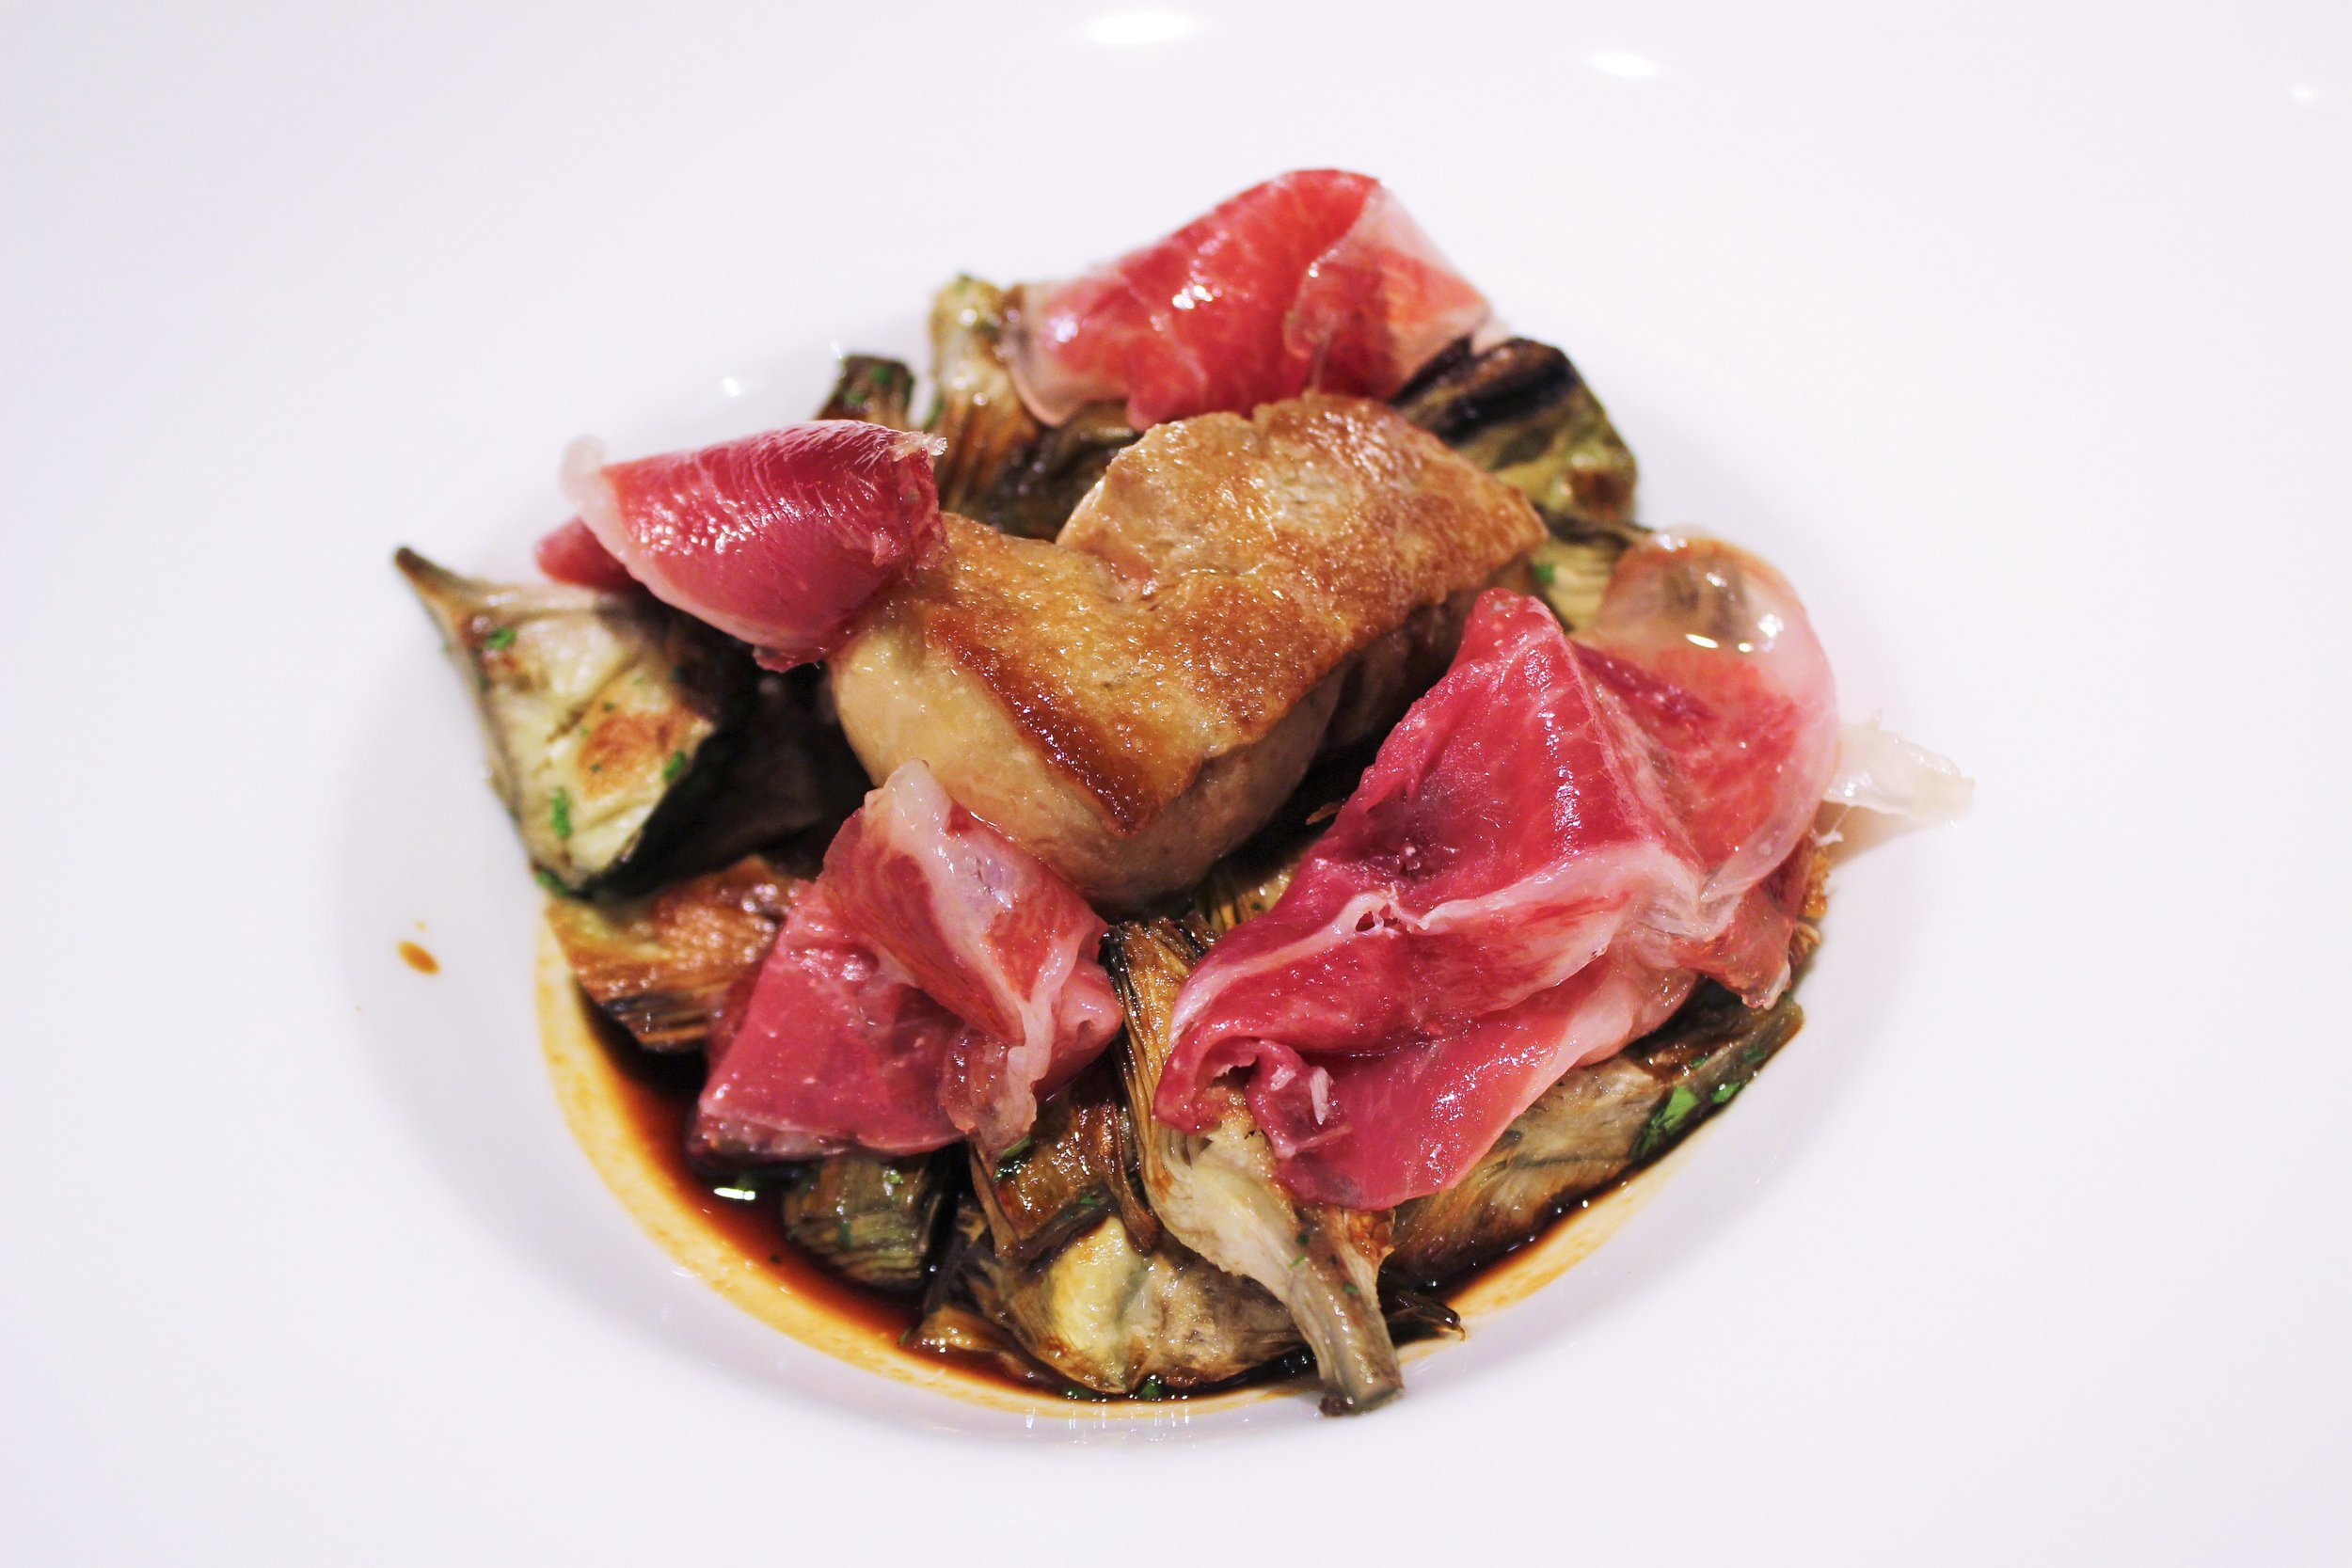 Grilled Artichokes Foie Gras and Iberian Ham at Igueldo in Barcelona